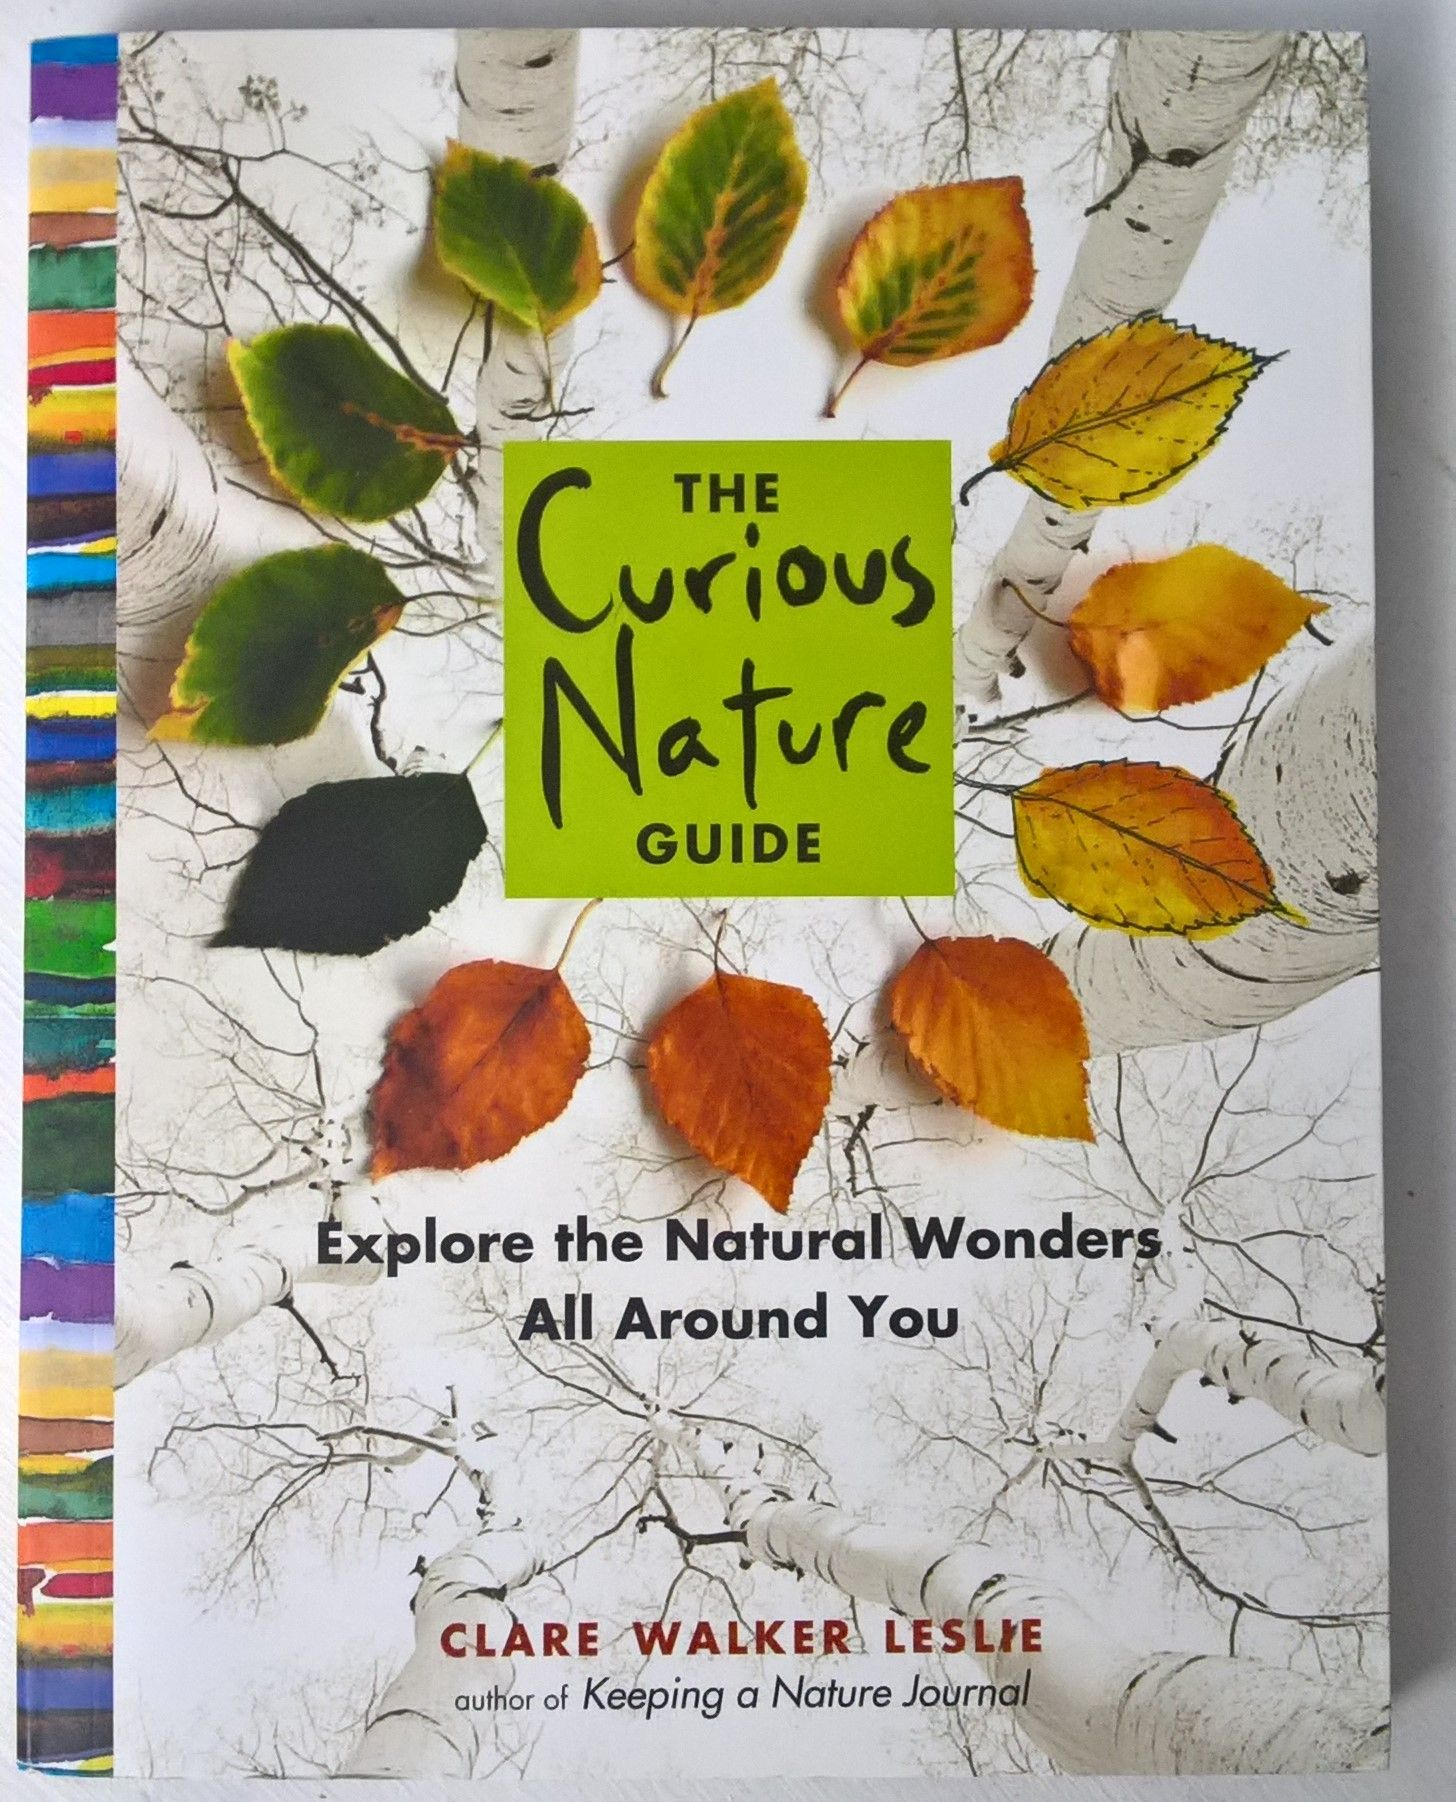 The Curious Nature Guide Explore Natural Wonders All Around You By Clare Walker Leslie Read Full Review On Curriculum Choice